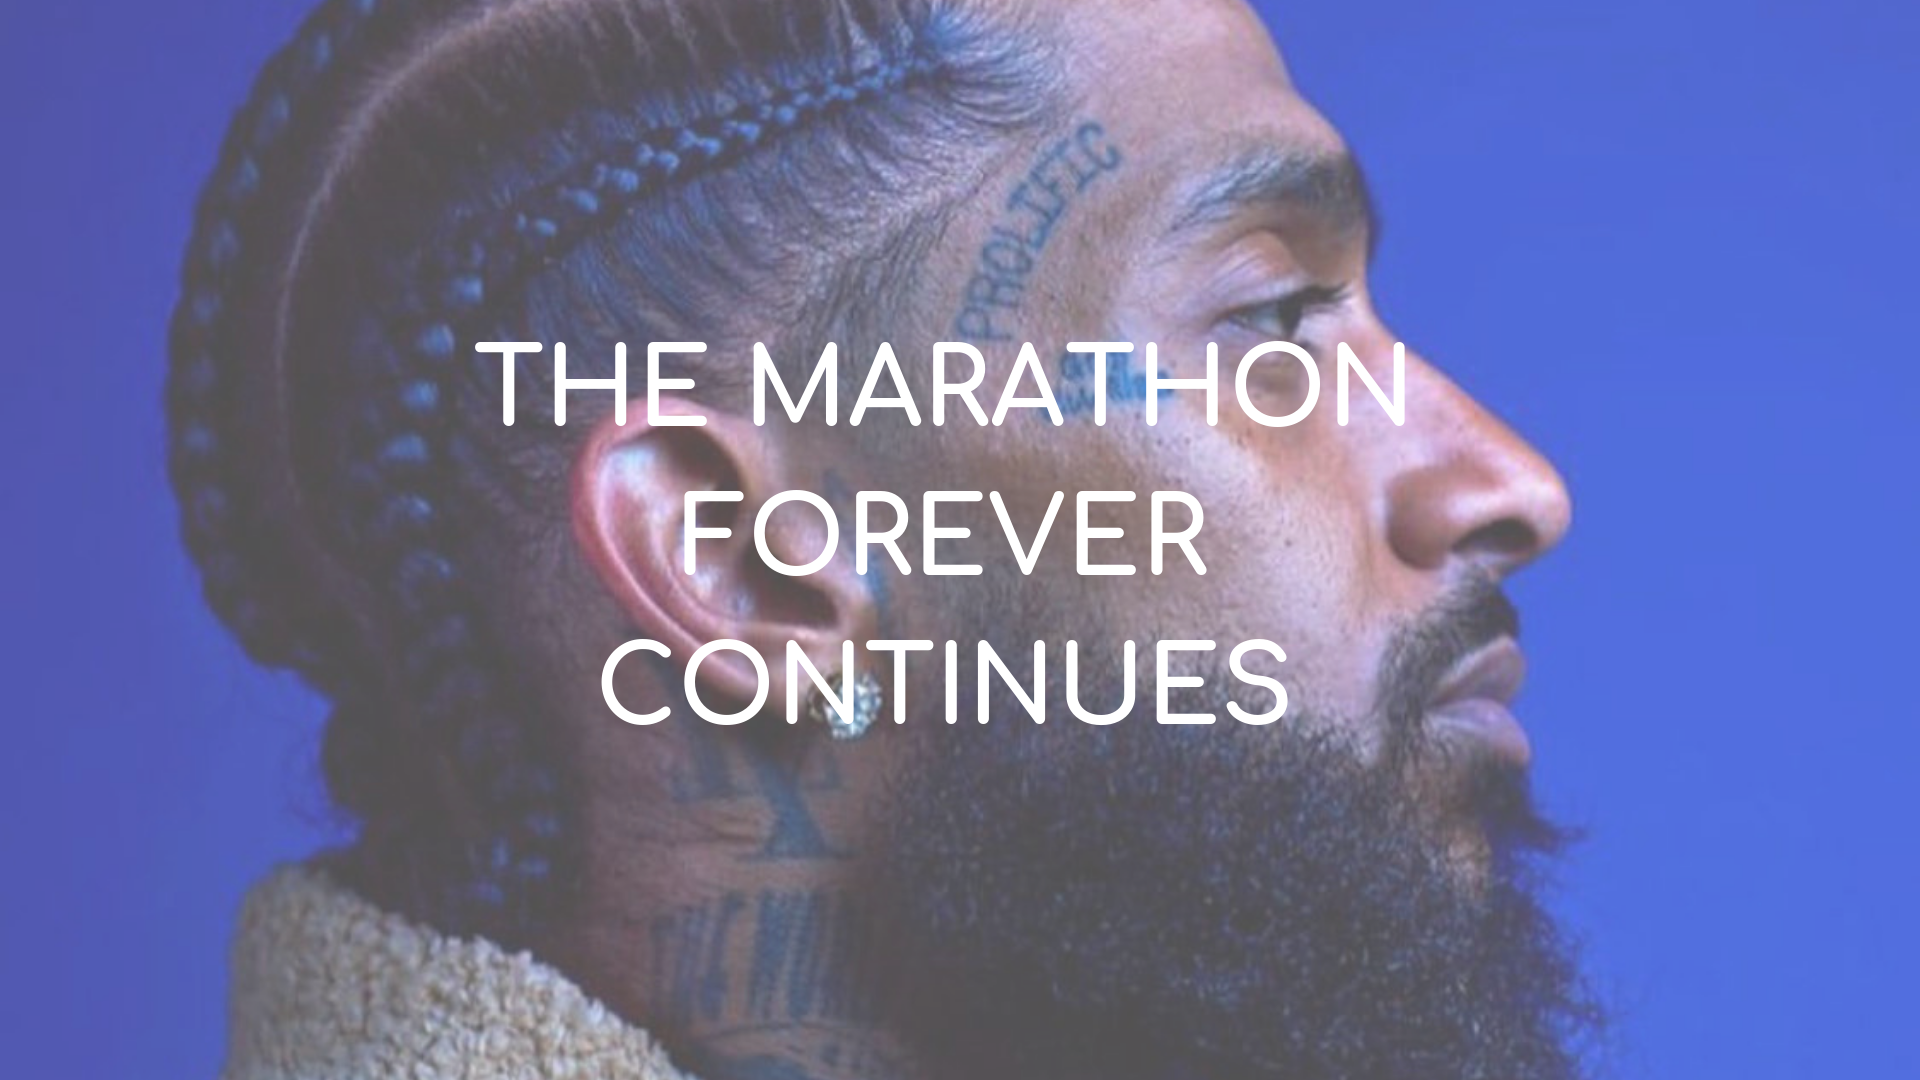 Remembering Nipsey Hussle: The Marathon Forever Continues